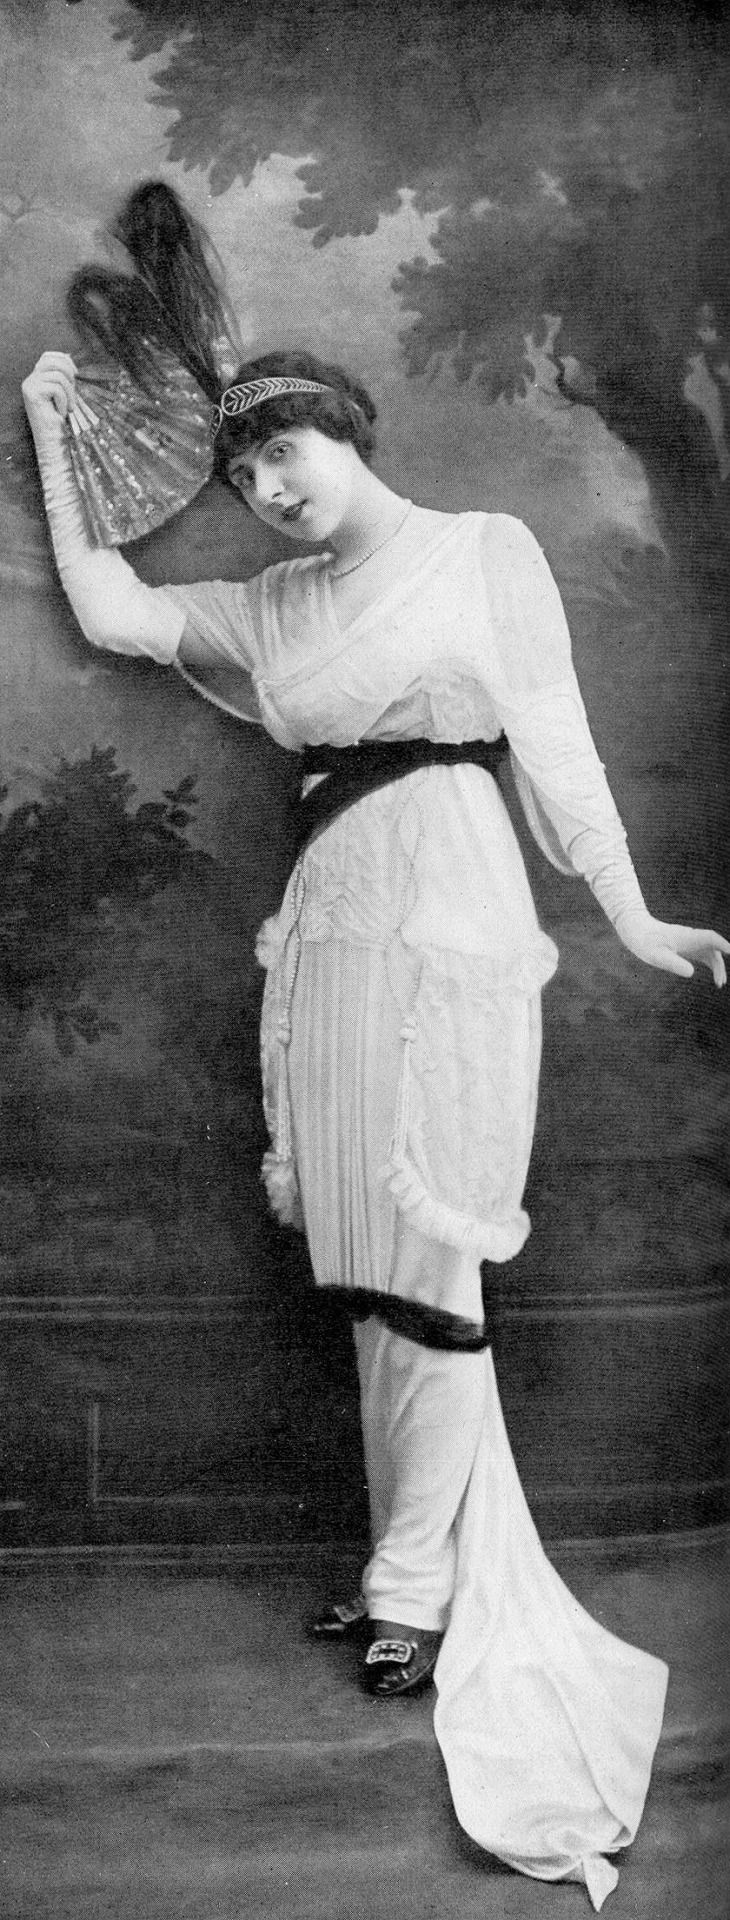 Juliette Rudy in dress by Buzenet, Les Modes August 1913. Photo by Talbot.